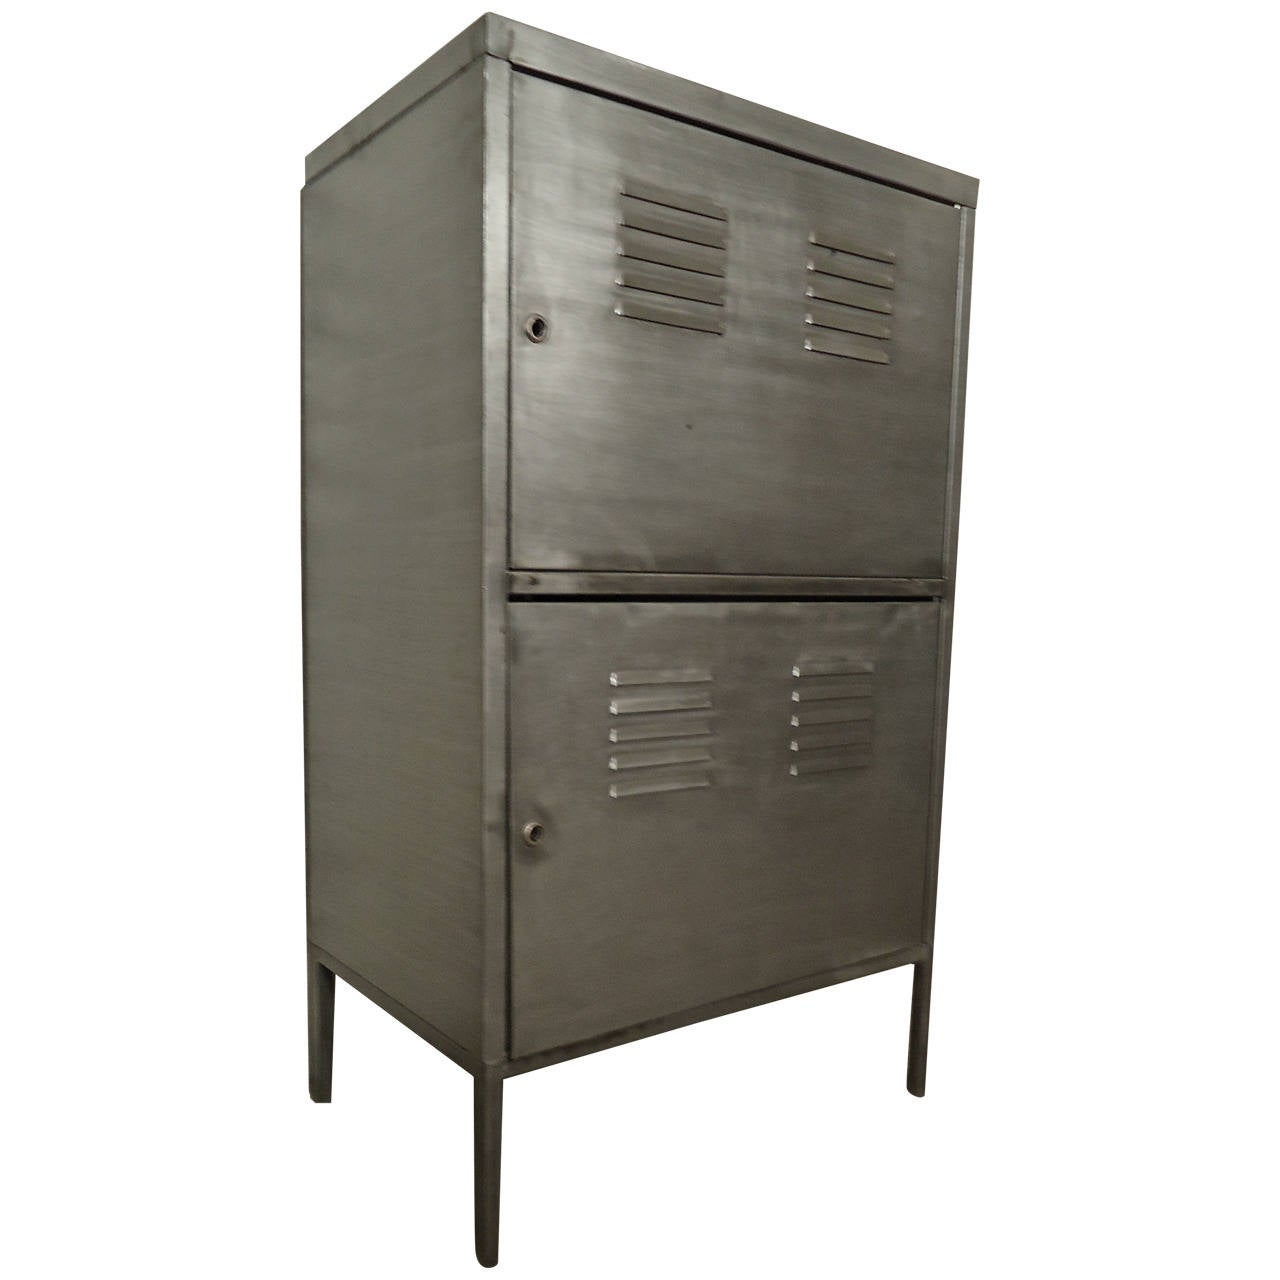 Industrial metal two door cabinet for sale at 1stdibs for 1 door cabinet